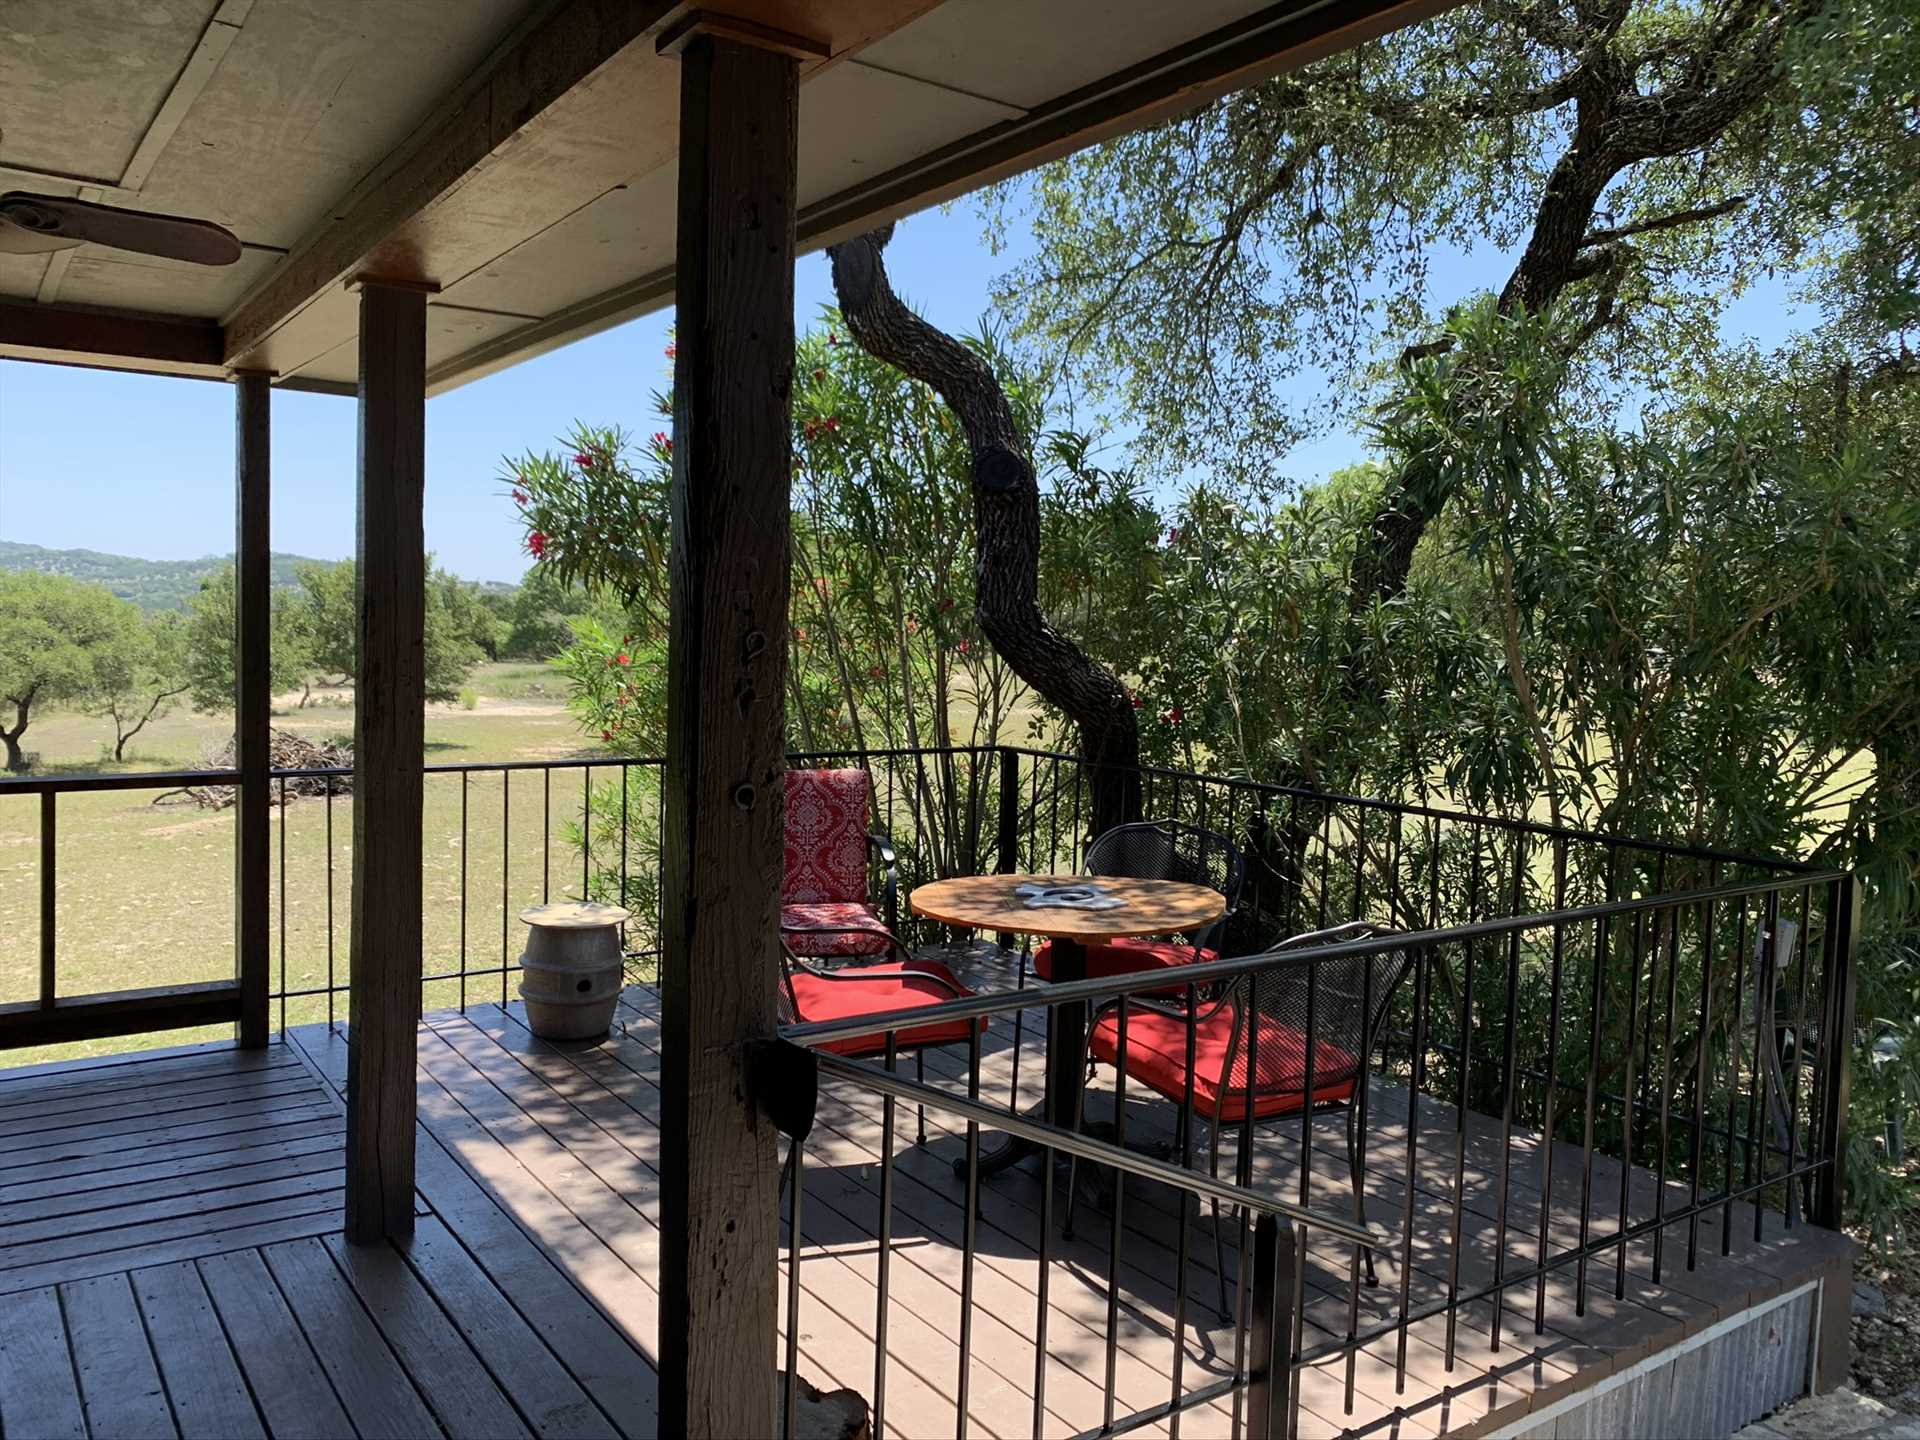 Wine and dine on the wonderful, tree-shaded outdoor dining patio!